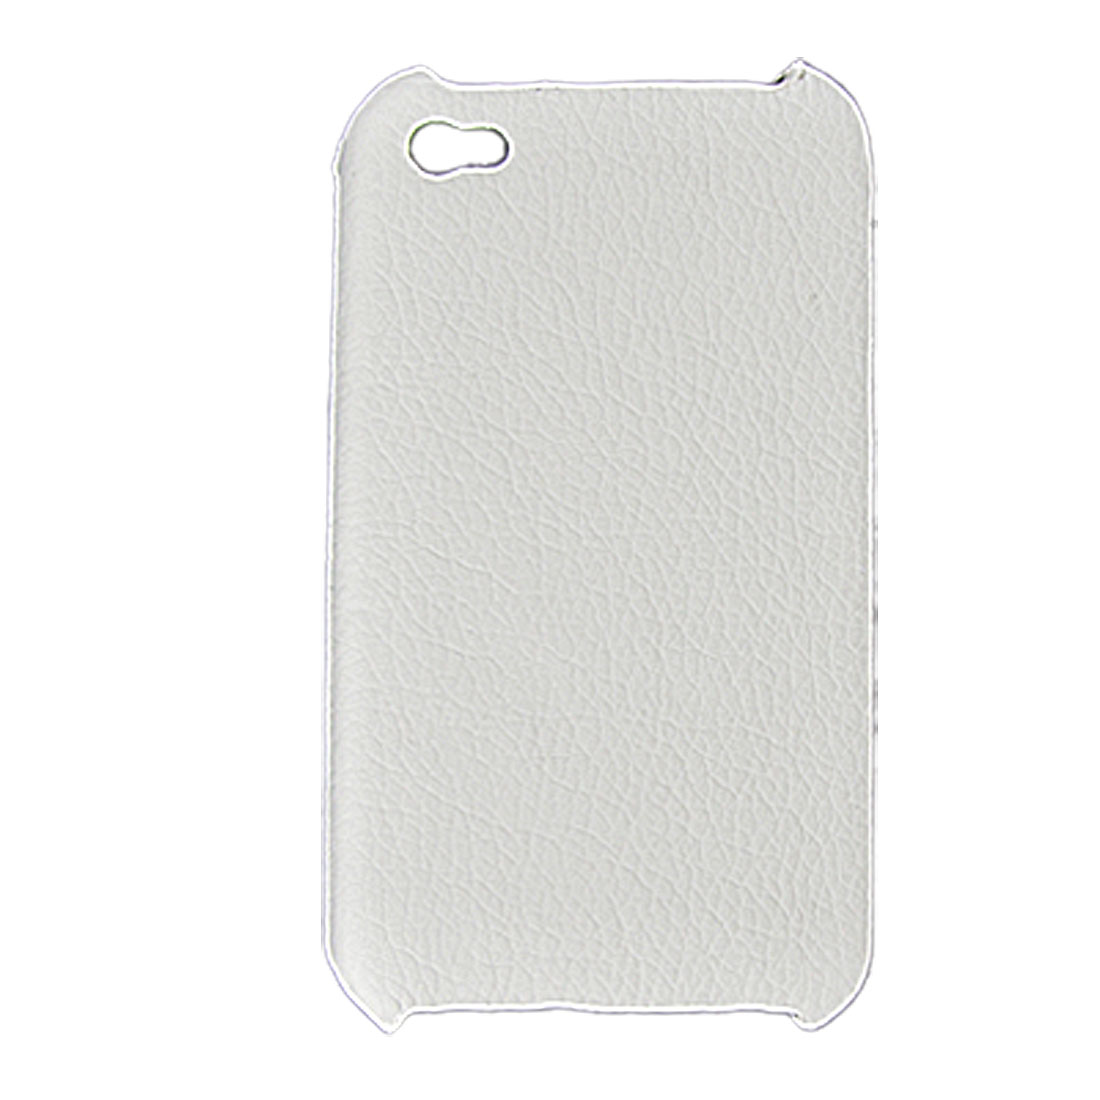 White Faux Leather Coated Hard Back Case Cover for iPhone 4 4G